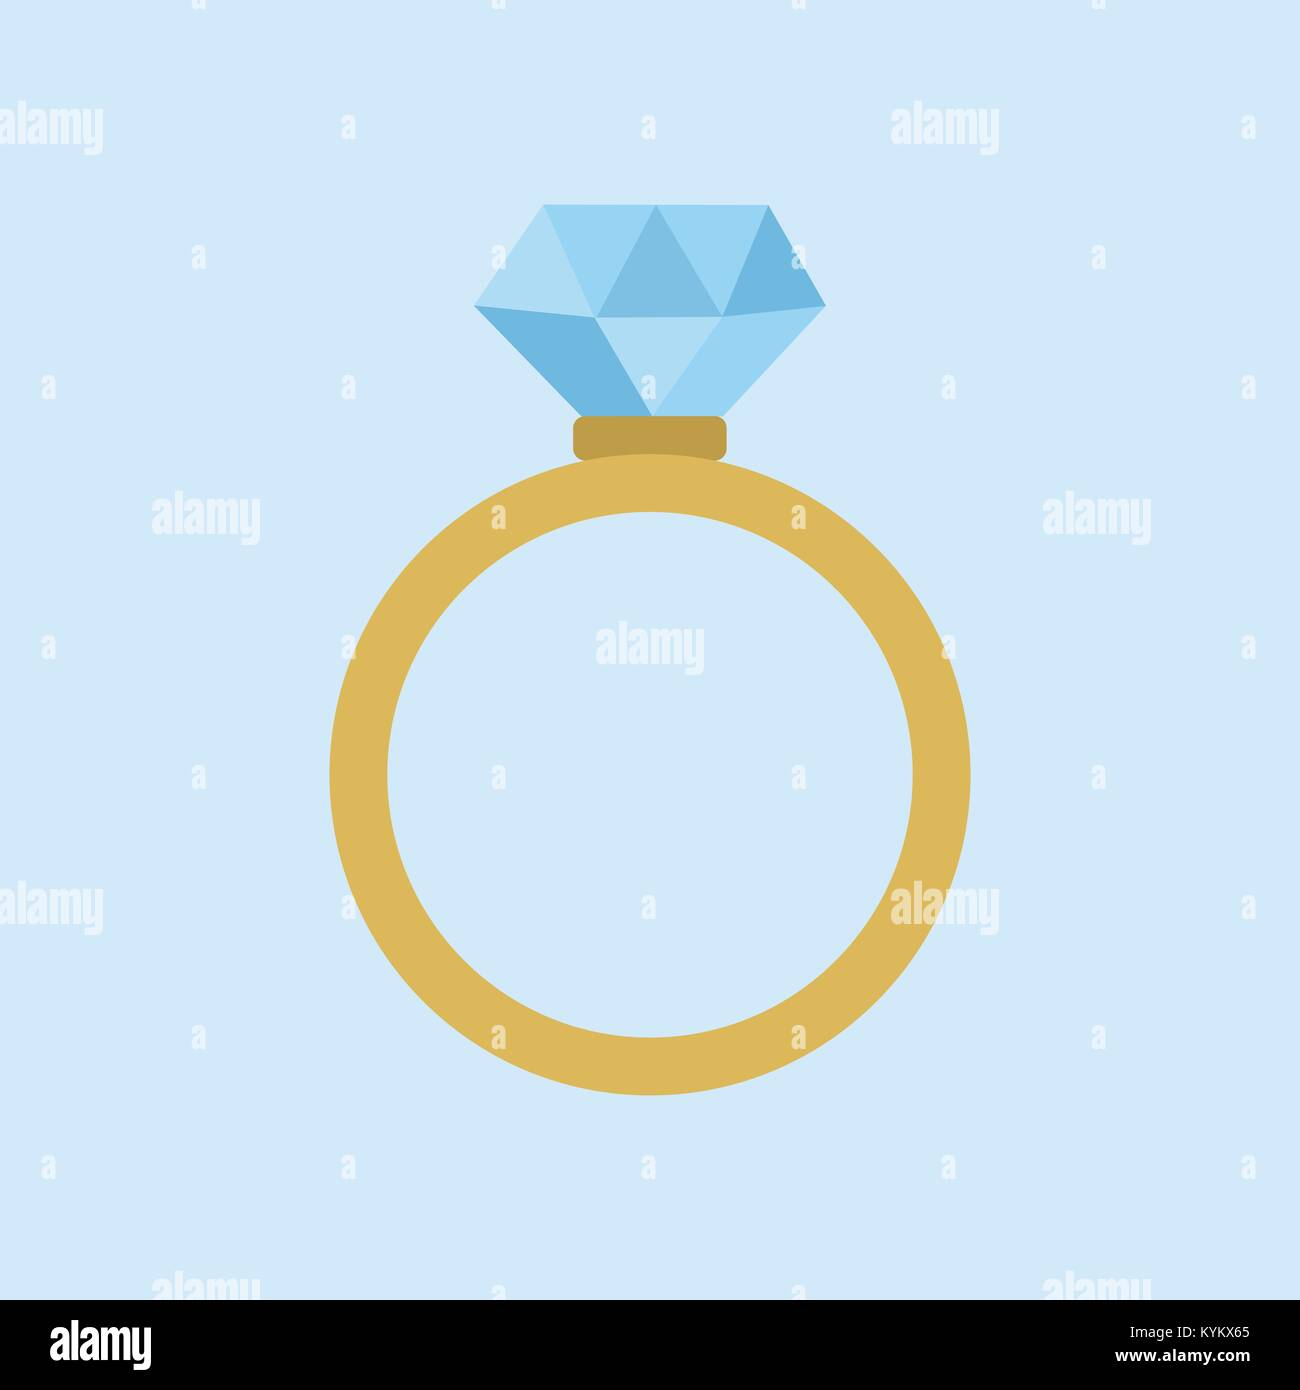 wedding diamond ring vector illustration graphic design stock vector